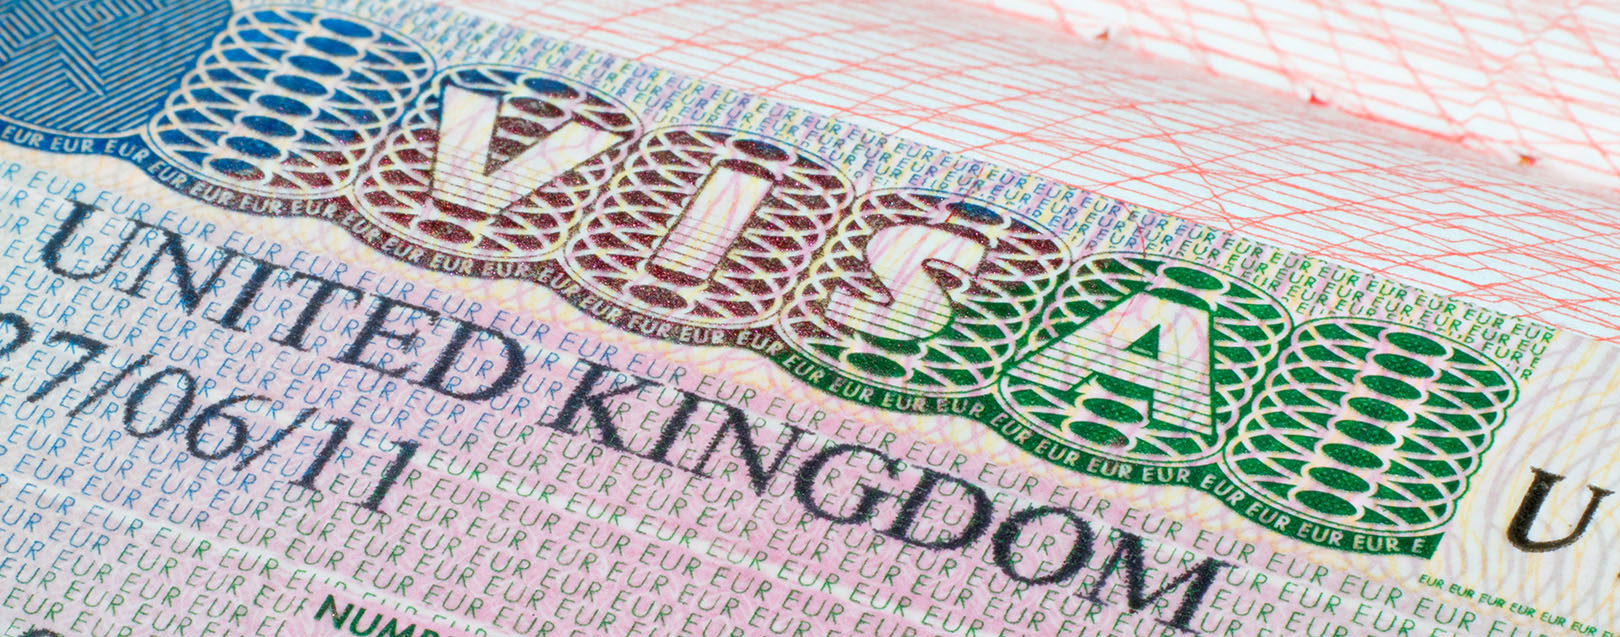 57% UK work visas issued to Indians in 2016